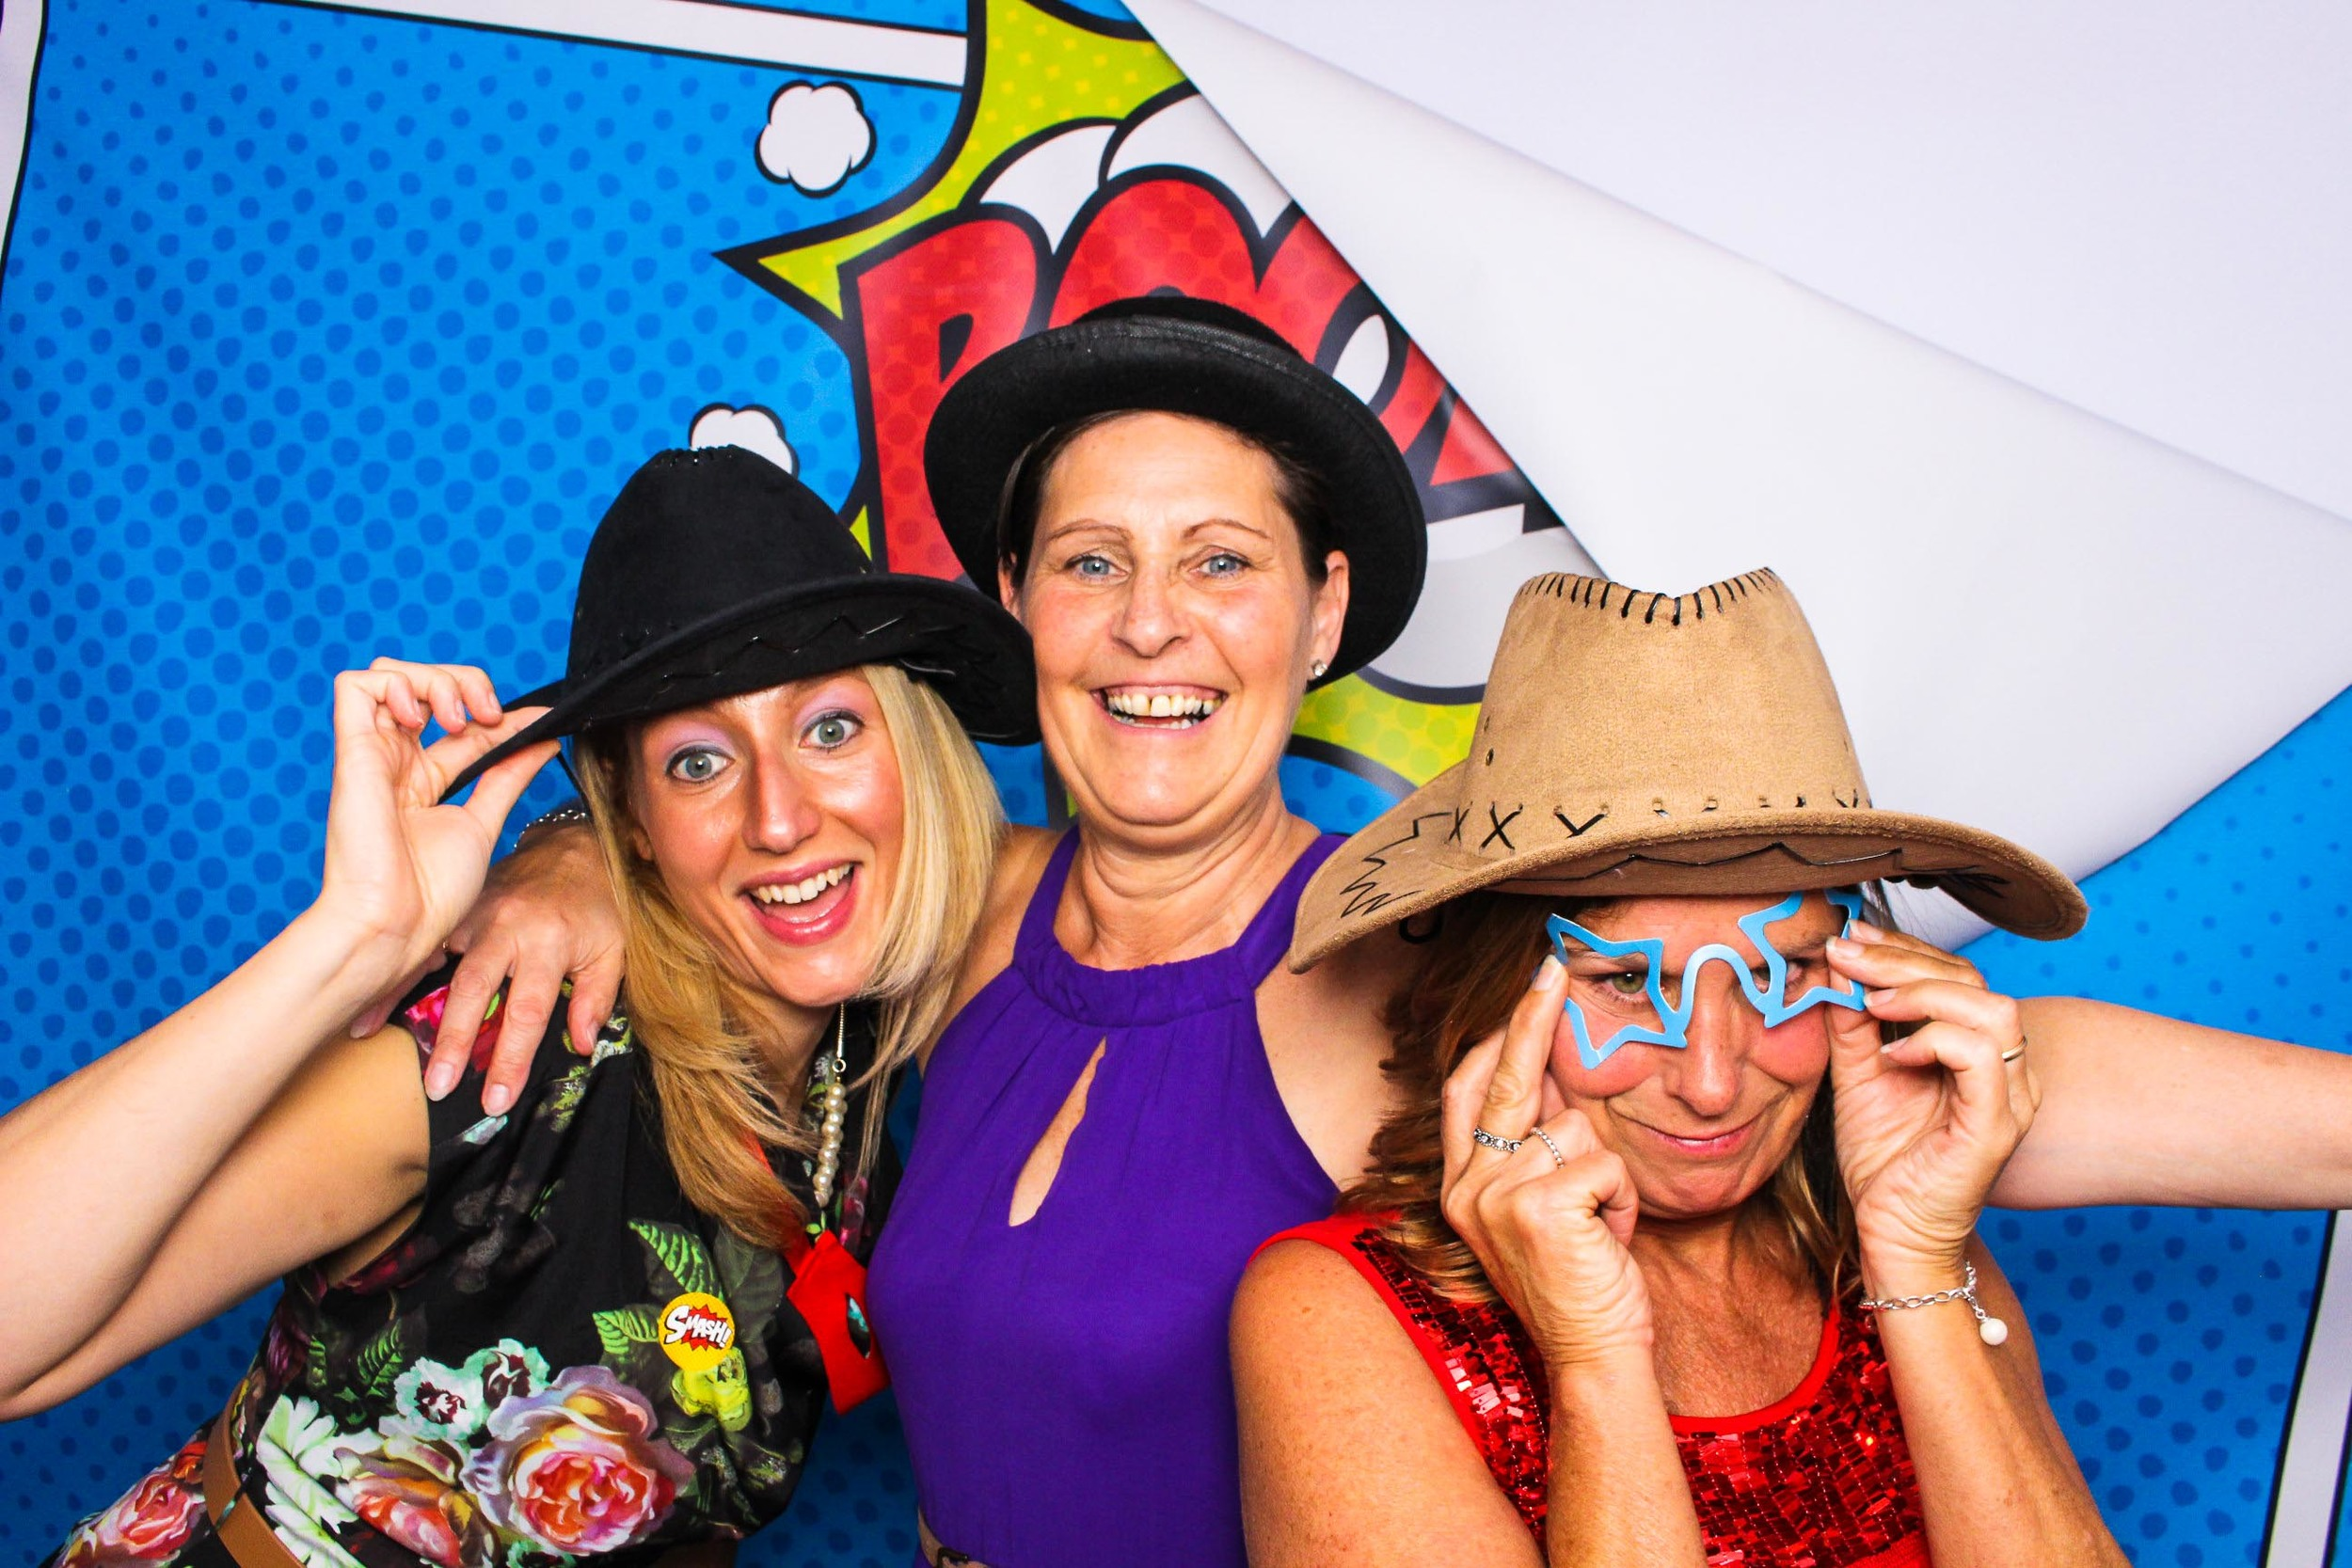 Fotoauto Photo Booth Hire - Shop Direct-244.jpg